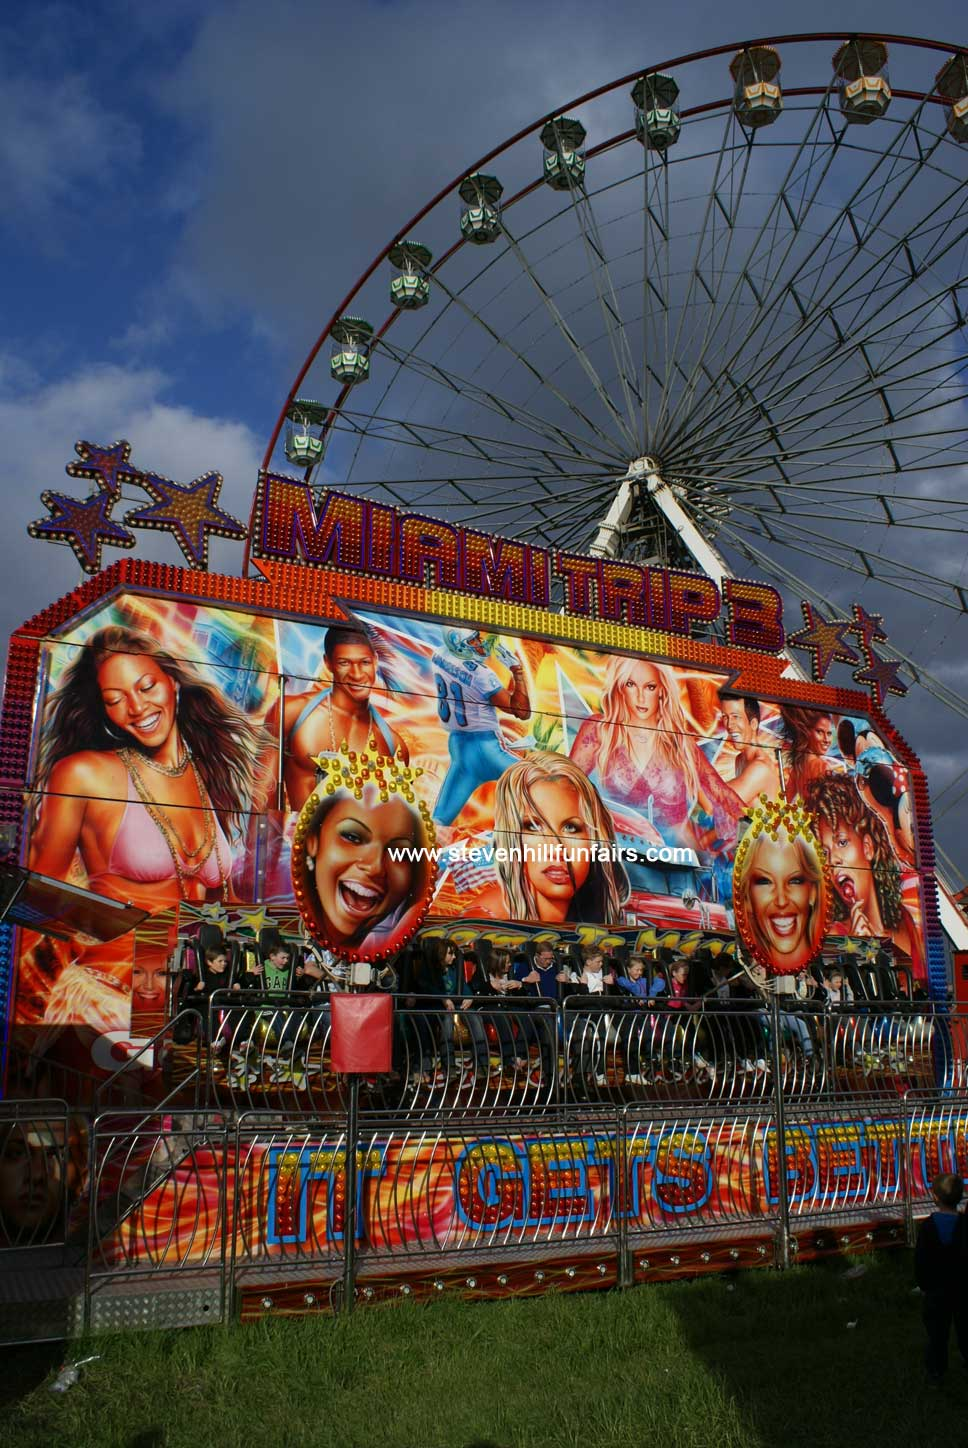 Miami Funfair ride